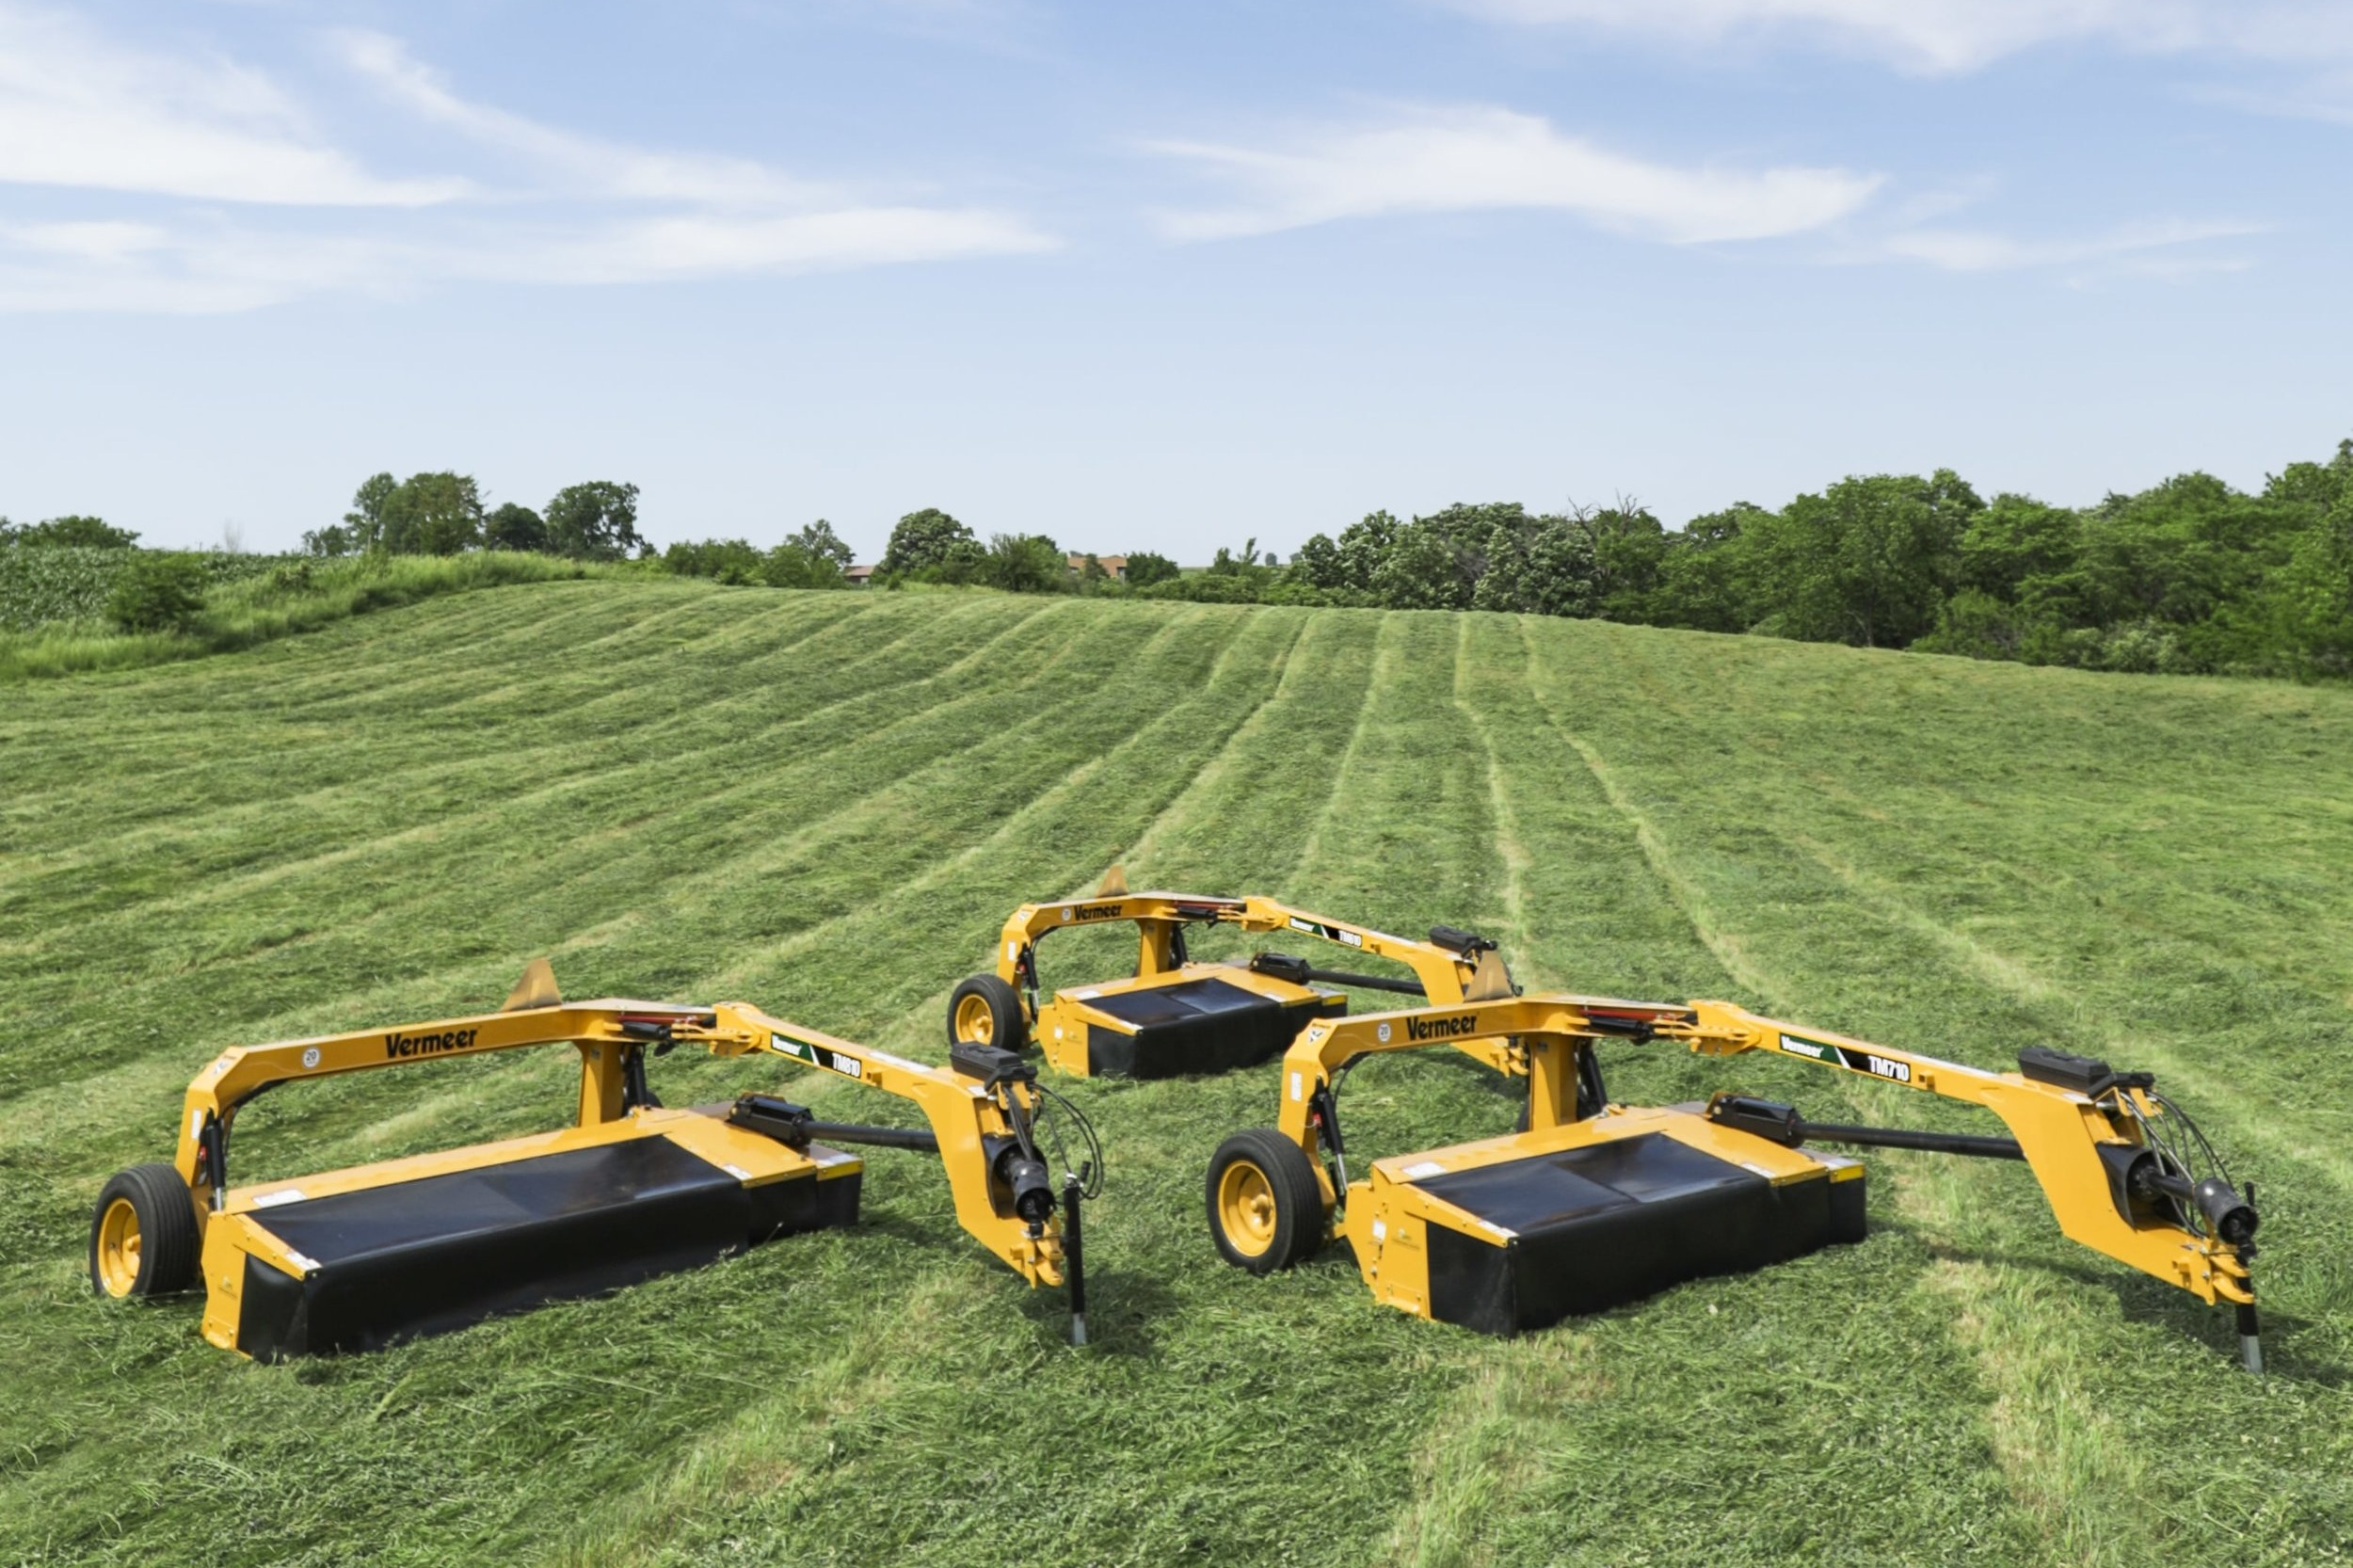 Trailed Mowers - Vermeer redesigned the way trailed mowers attach to tractors, using an easy as a drop of a pin hook-up system and plenty of other innovative features.